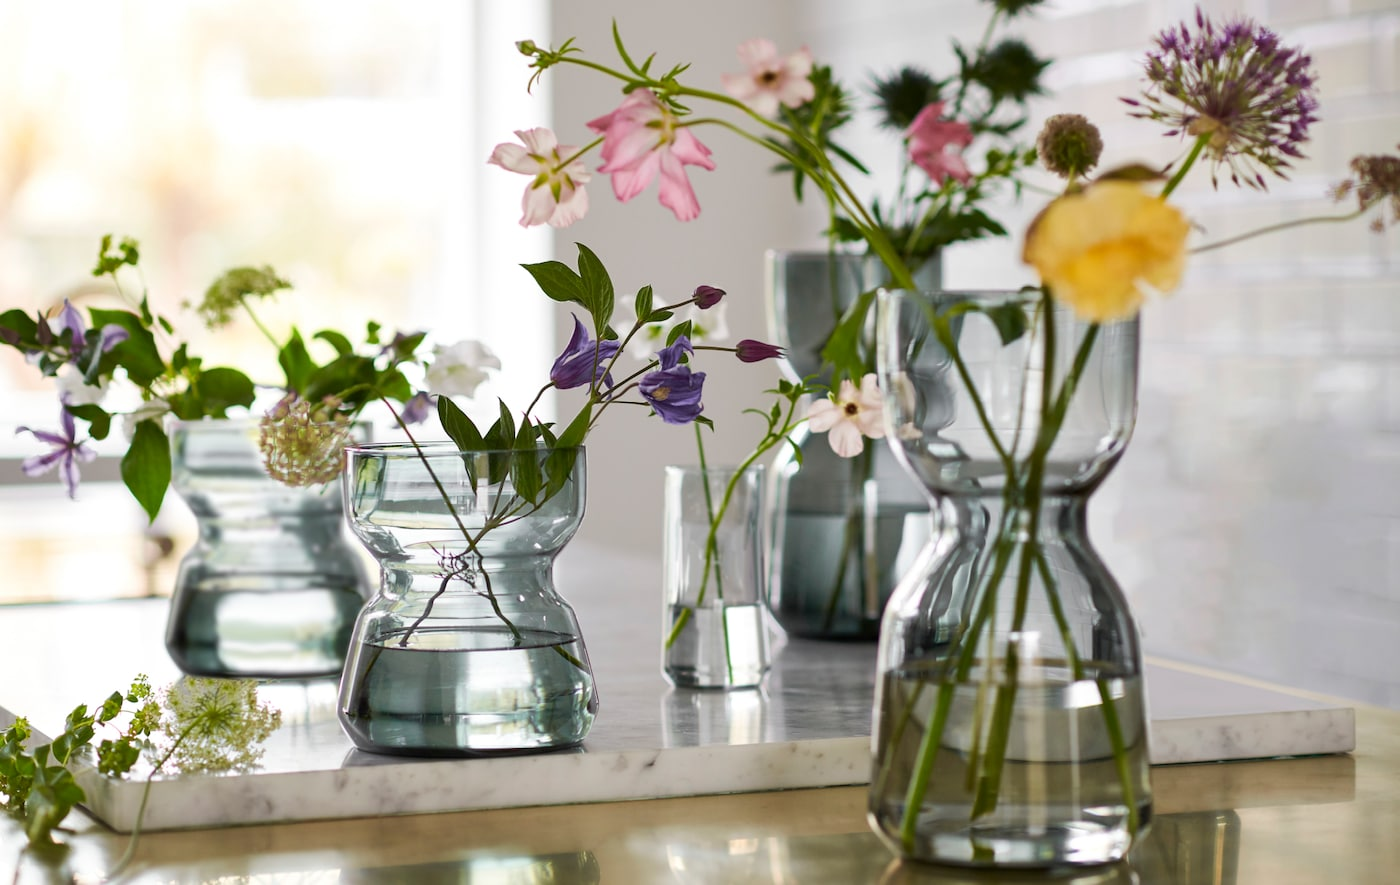 Link to 'A collection that offers comfort for every body' - image of glass vases filled with flowers.